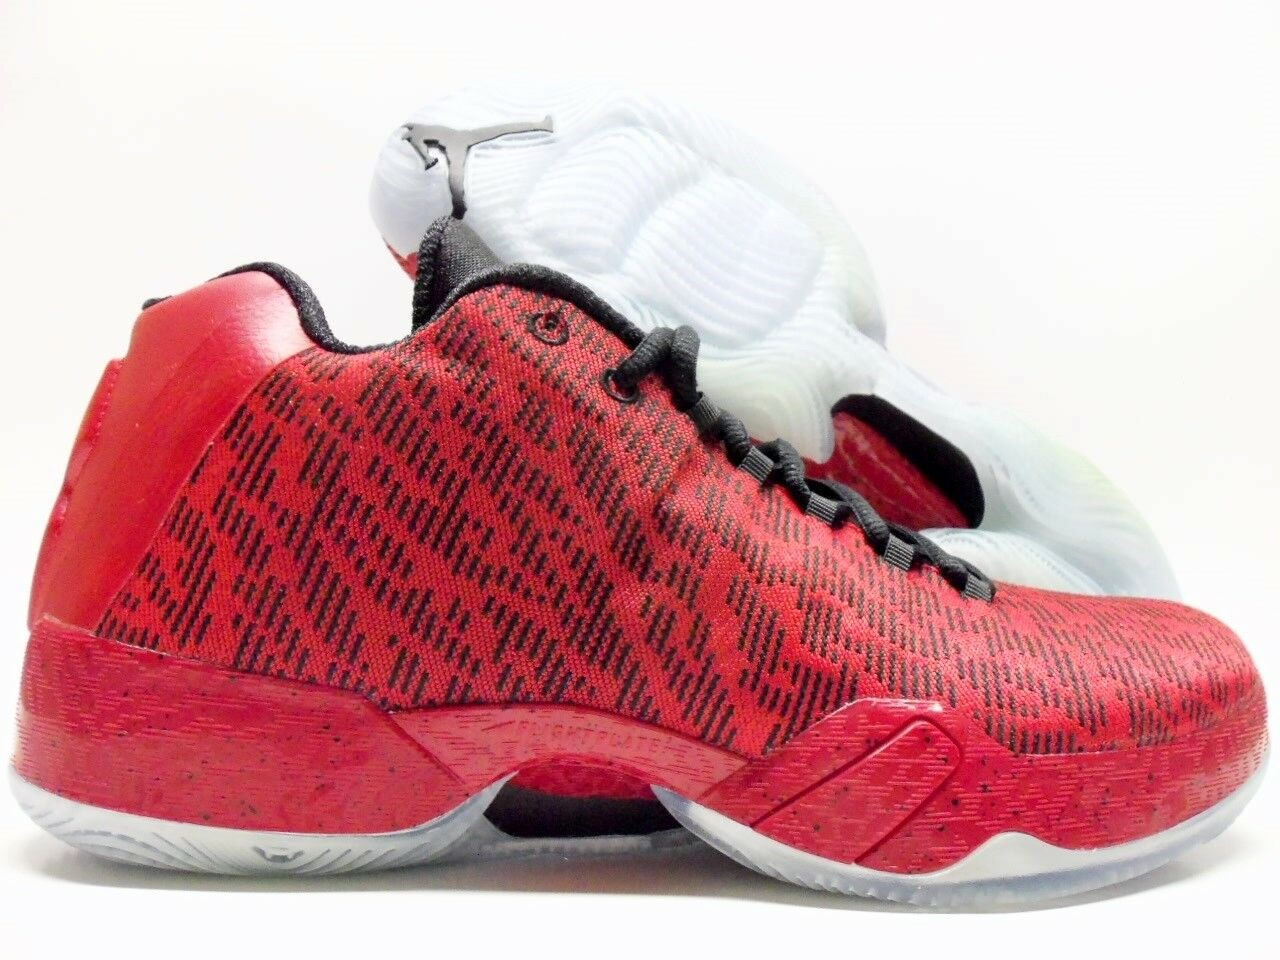 NIKE AIR JORDAN XX9 LOW JIMMY BUTLER PE GYM RED/BLACK SIZE MEN'S 9 Price reduction The latest discount shoes for men and women